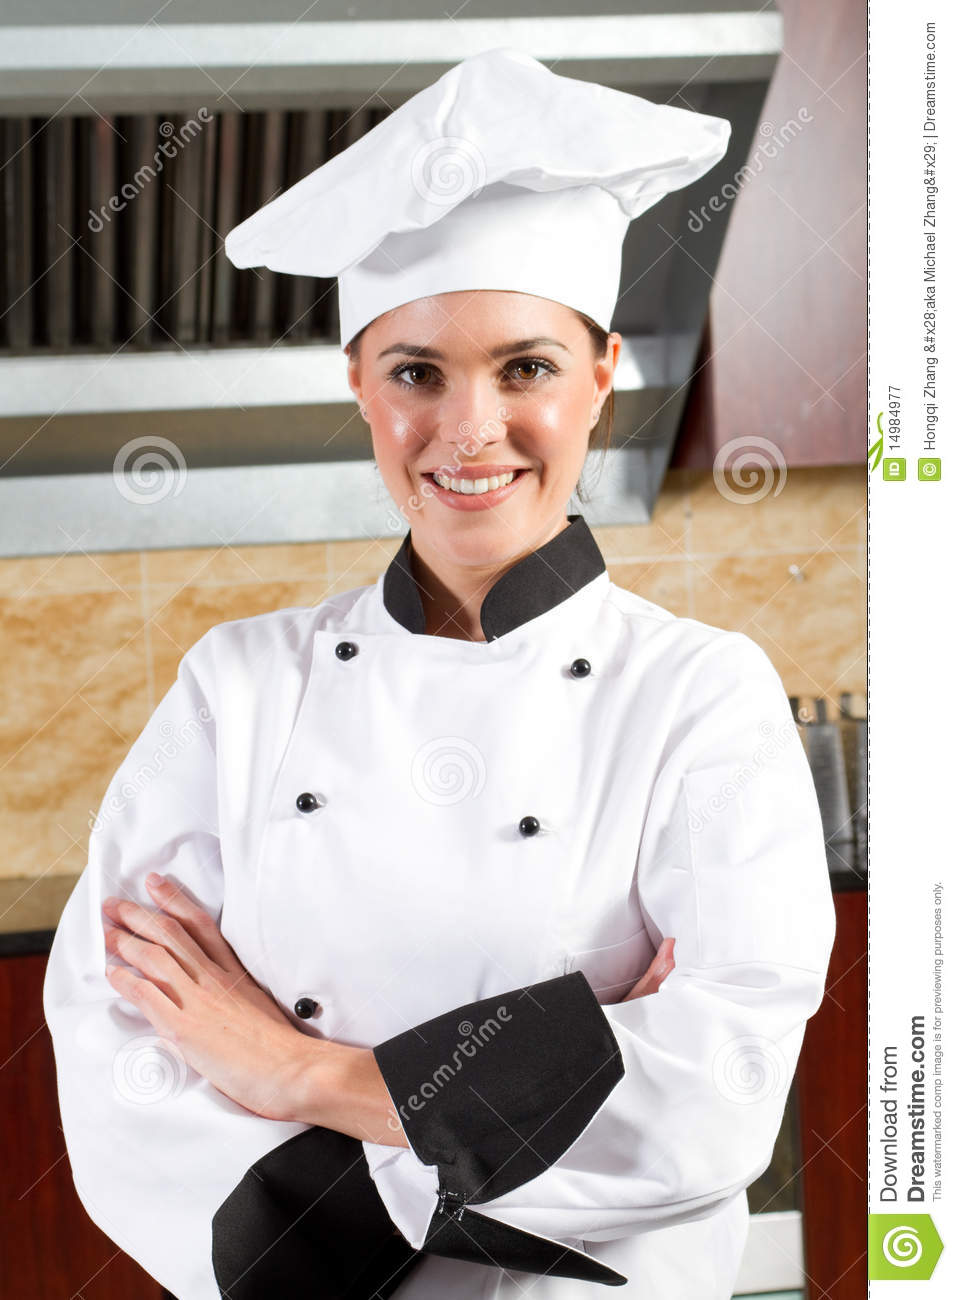 Female Chef Royalty Free Stock Photography - Image: 14984977